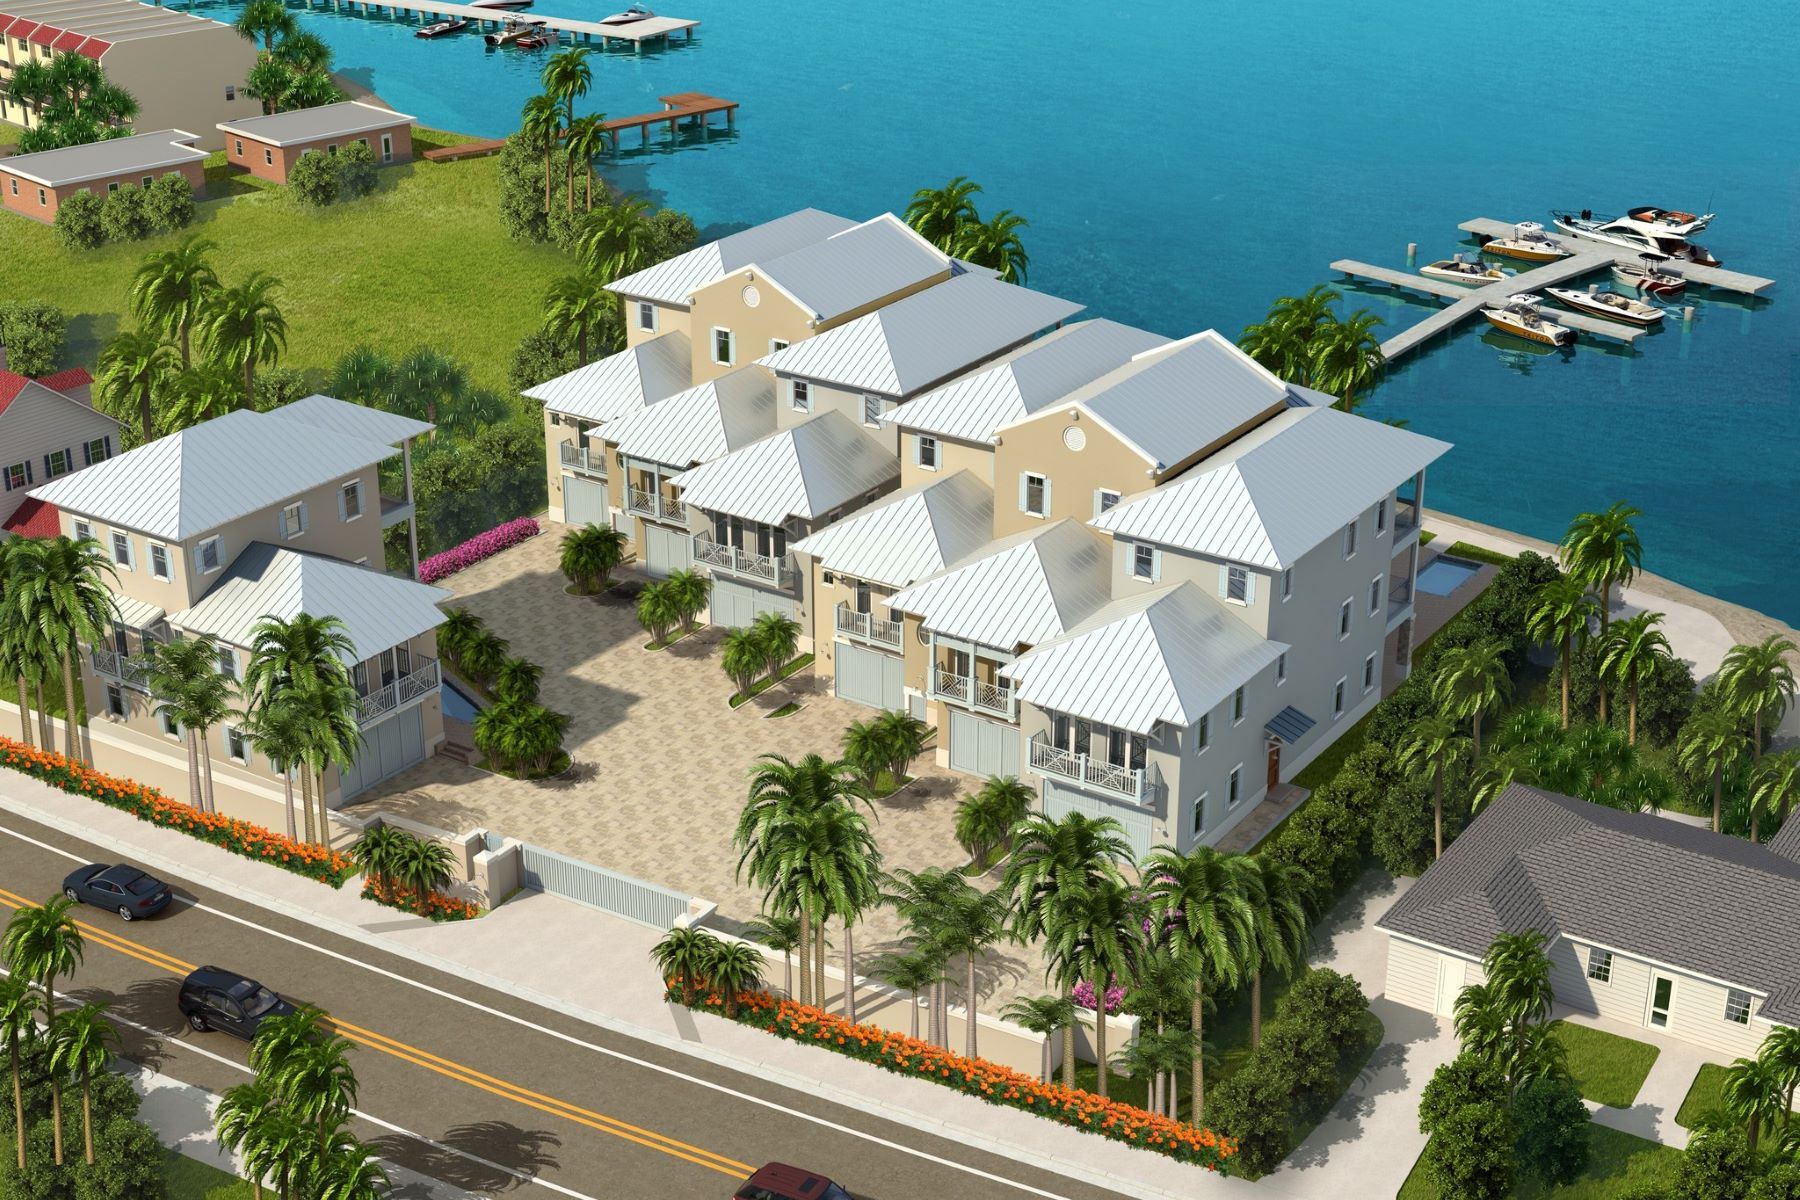 Таунхаус для того Продажа на Riverfront Ultra-luxury townhome 1502 Seaway Drive #1 Hutchinson Island, Флорида 34949 Соединенные Штаты